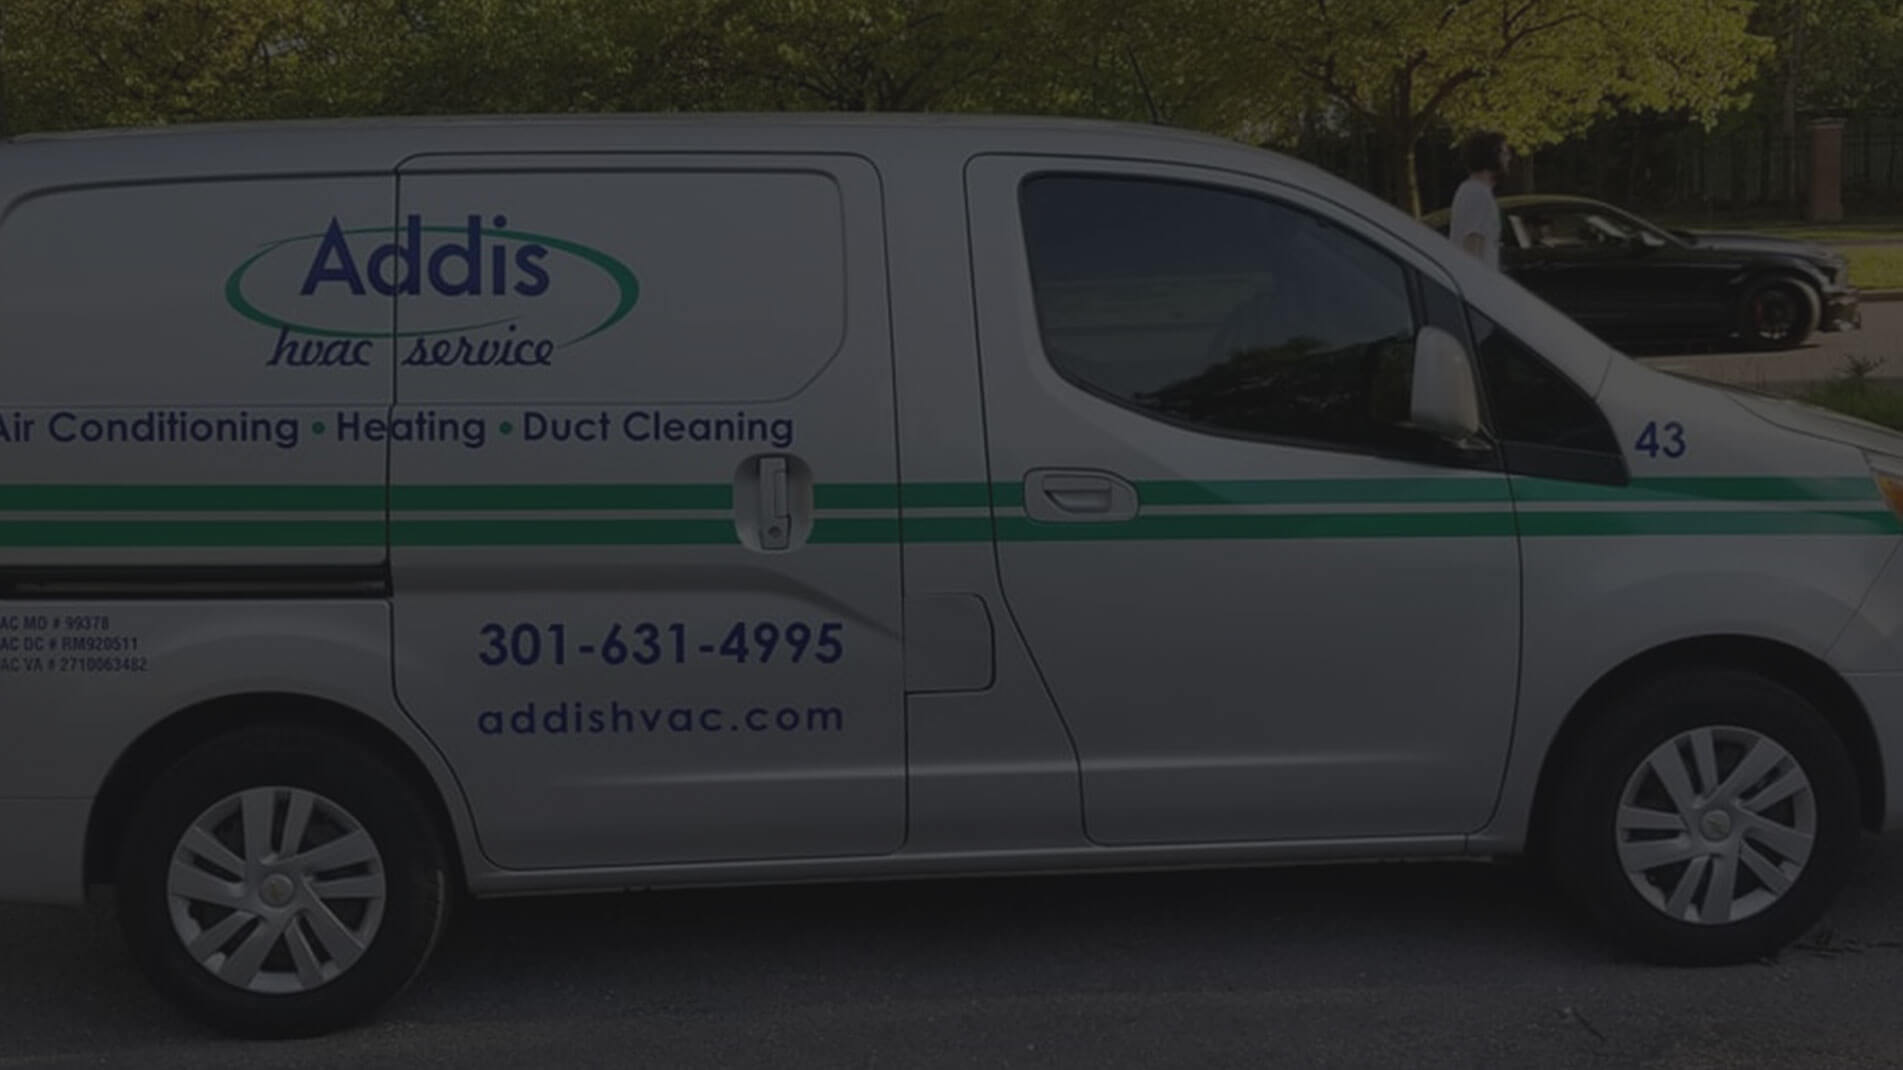 Addis HVAC Service HVAC Services